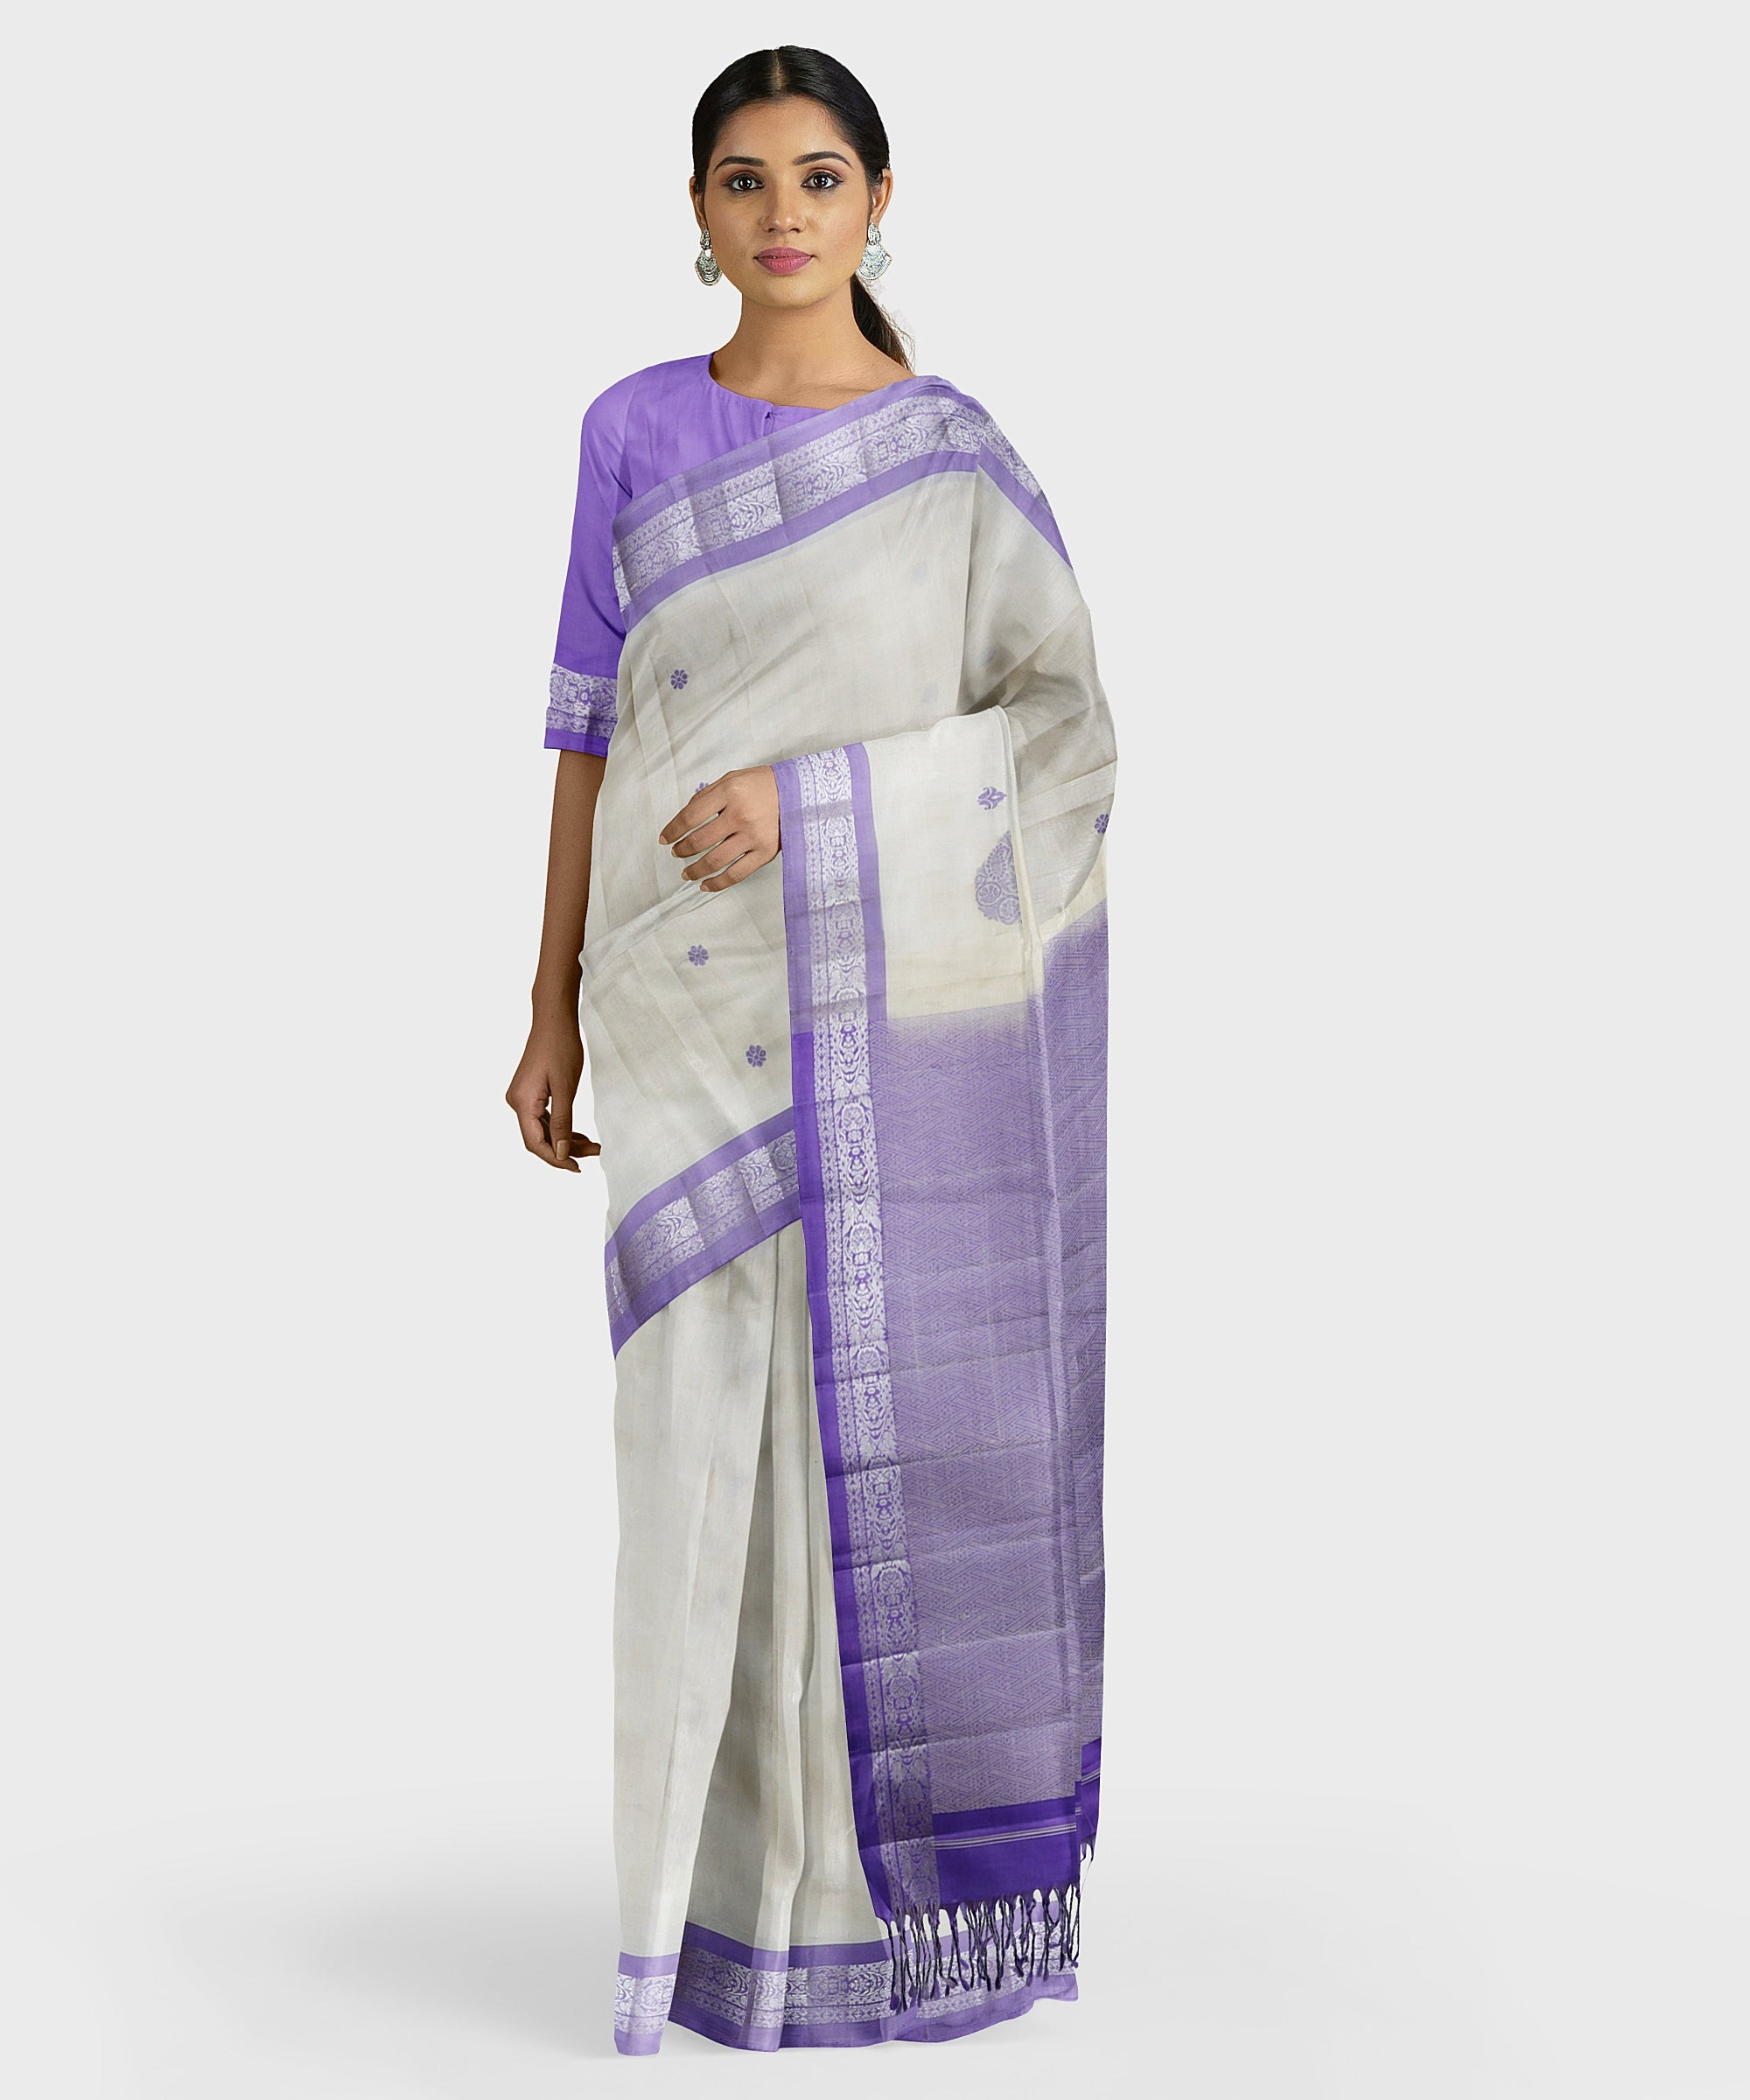 Purple Katan border Kodiyala handloom silk saree